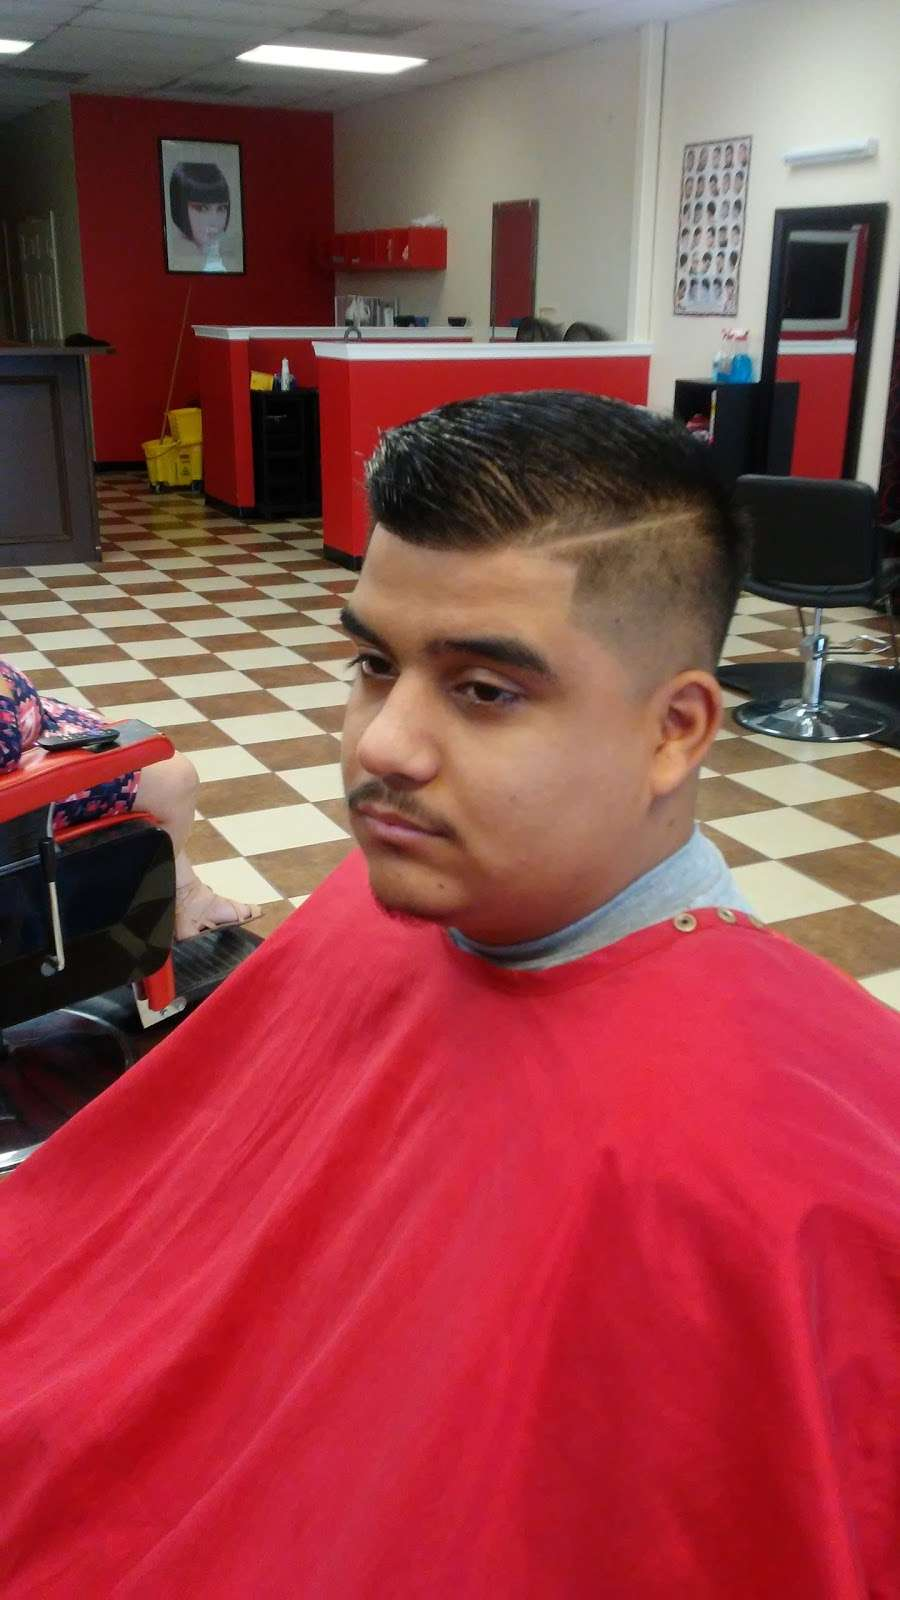 new style salon and barbershop - hair care  | Photo 8 of 10 | Address: 917 Greens Rd, Houston, TX 77060, USA | Phone: (281) 873-2121